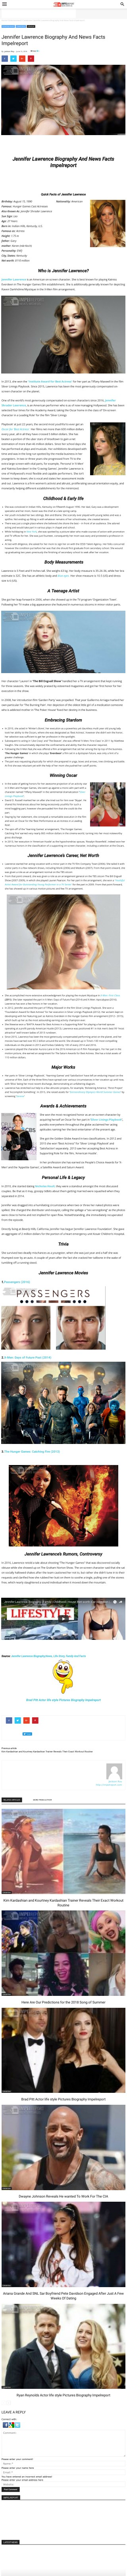 Jennifer Lawrence Biography And News Facts Impelreport